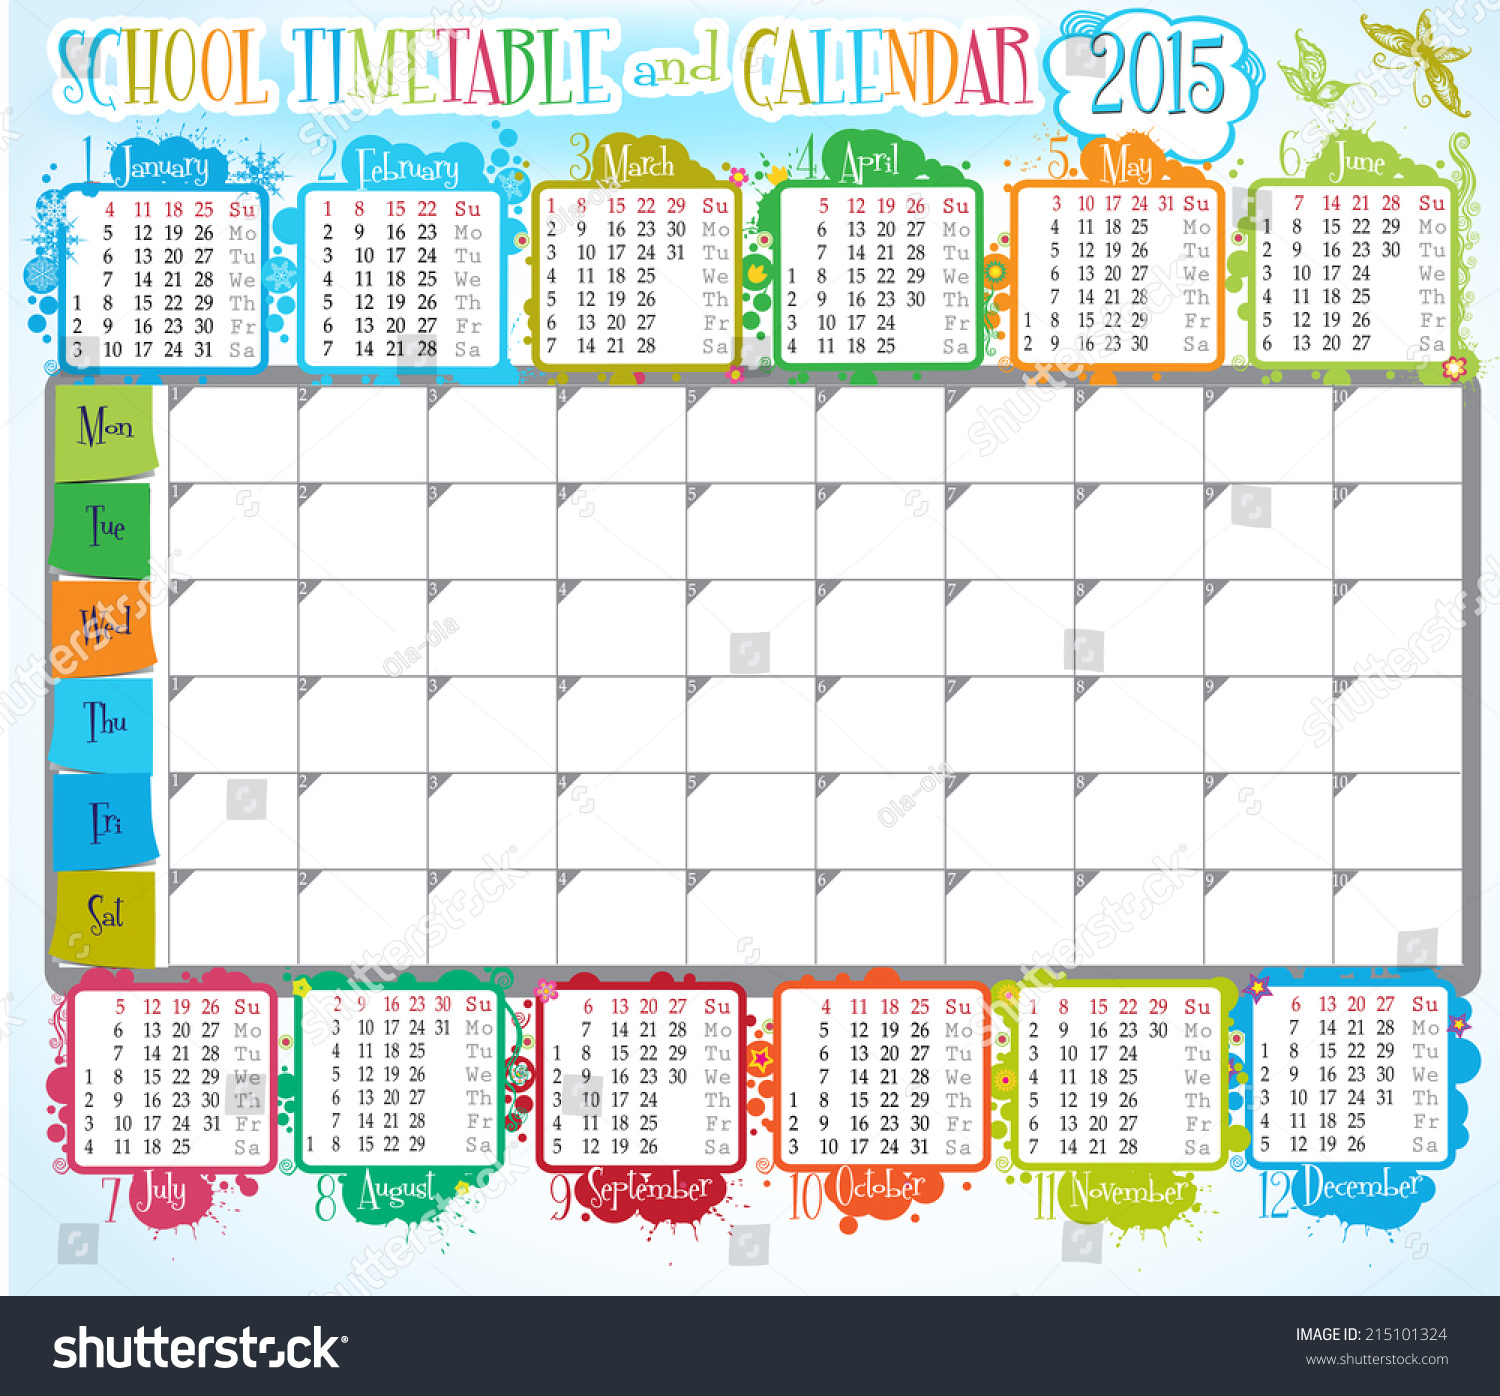 doc timetable template school timetables as 2015 calendar school timetable students pupils vector timetable template school